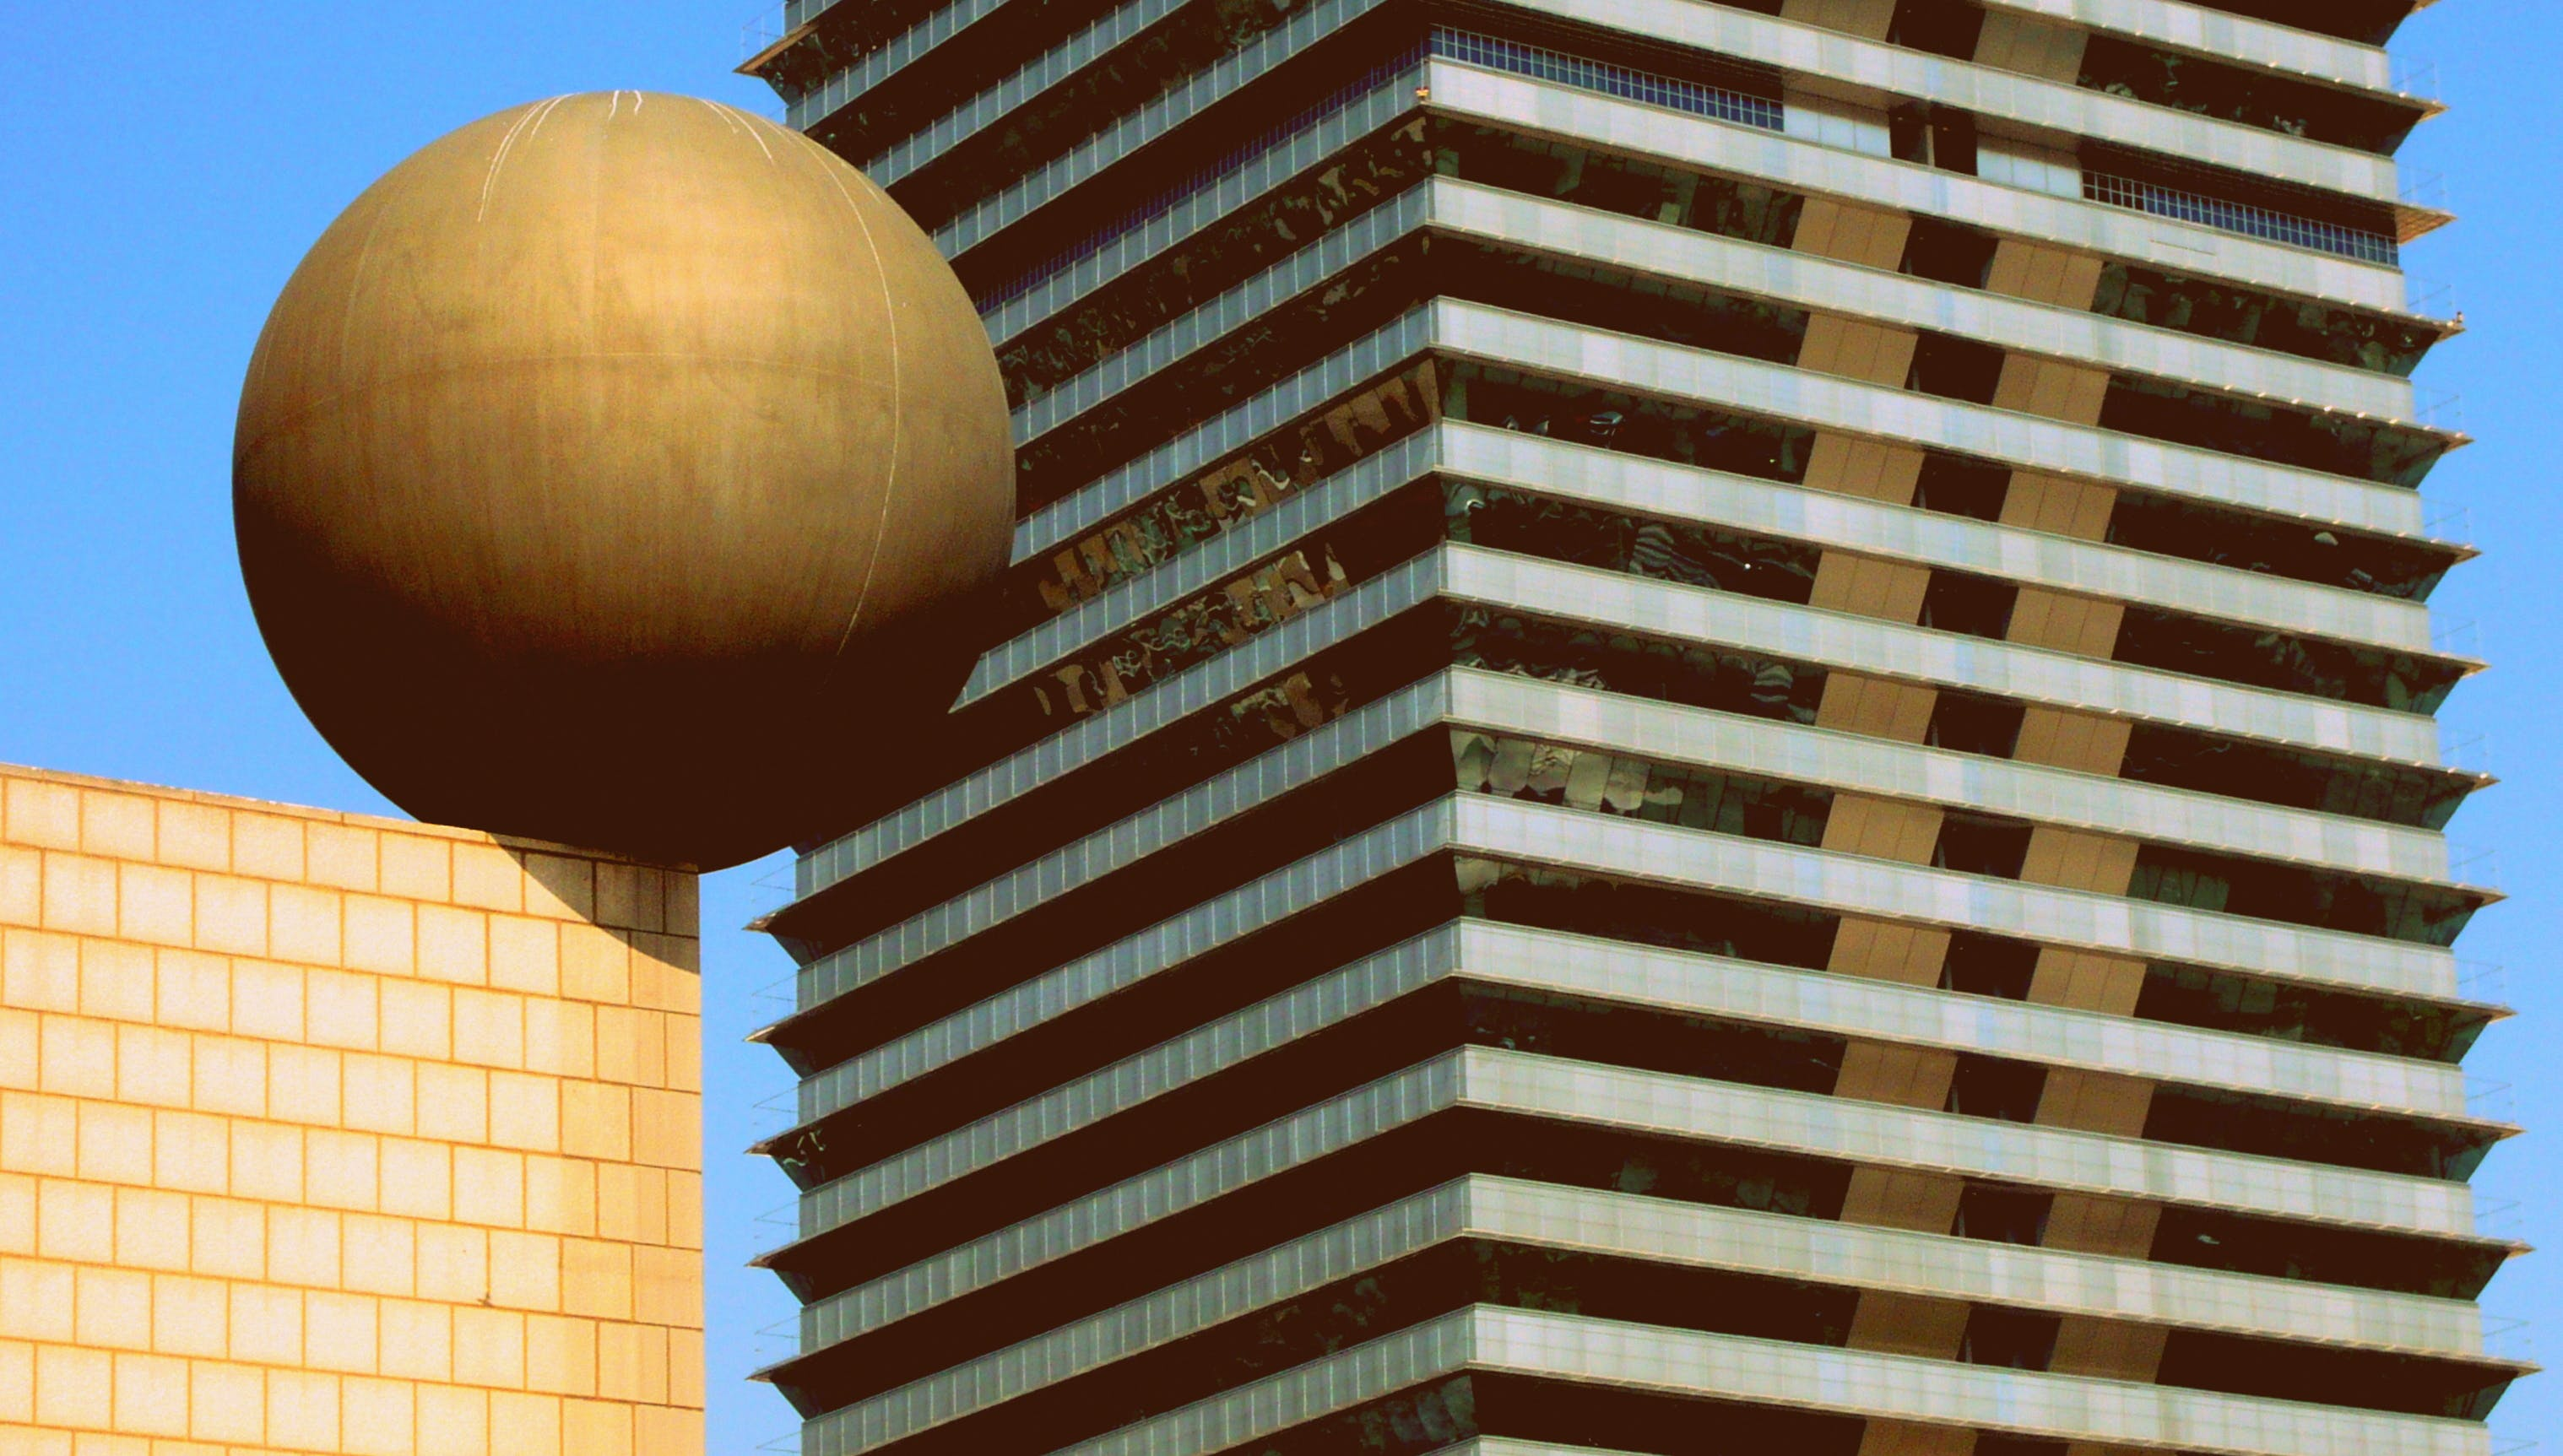 Free stock photo of building, architecture, ball, barcelona